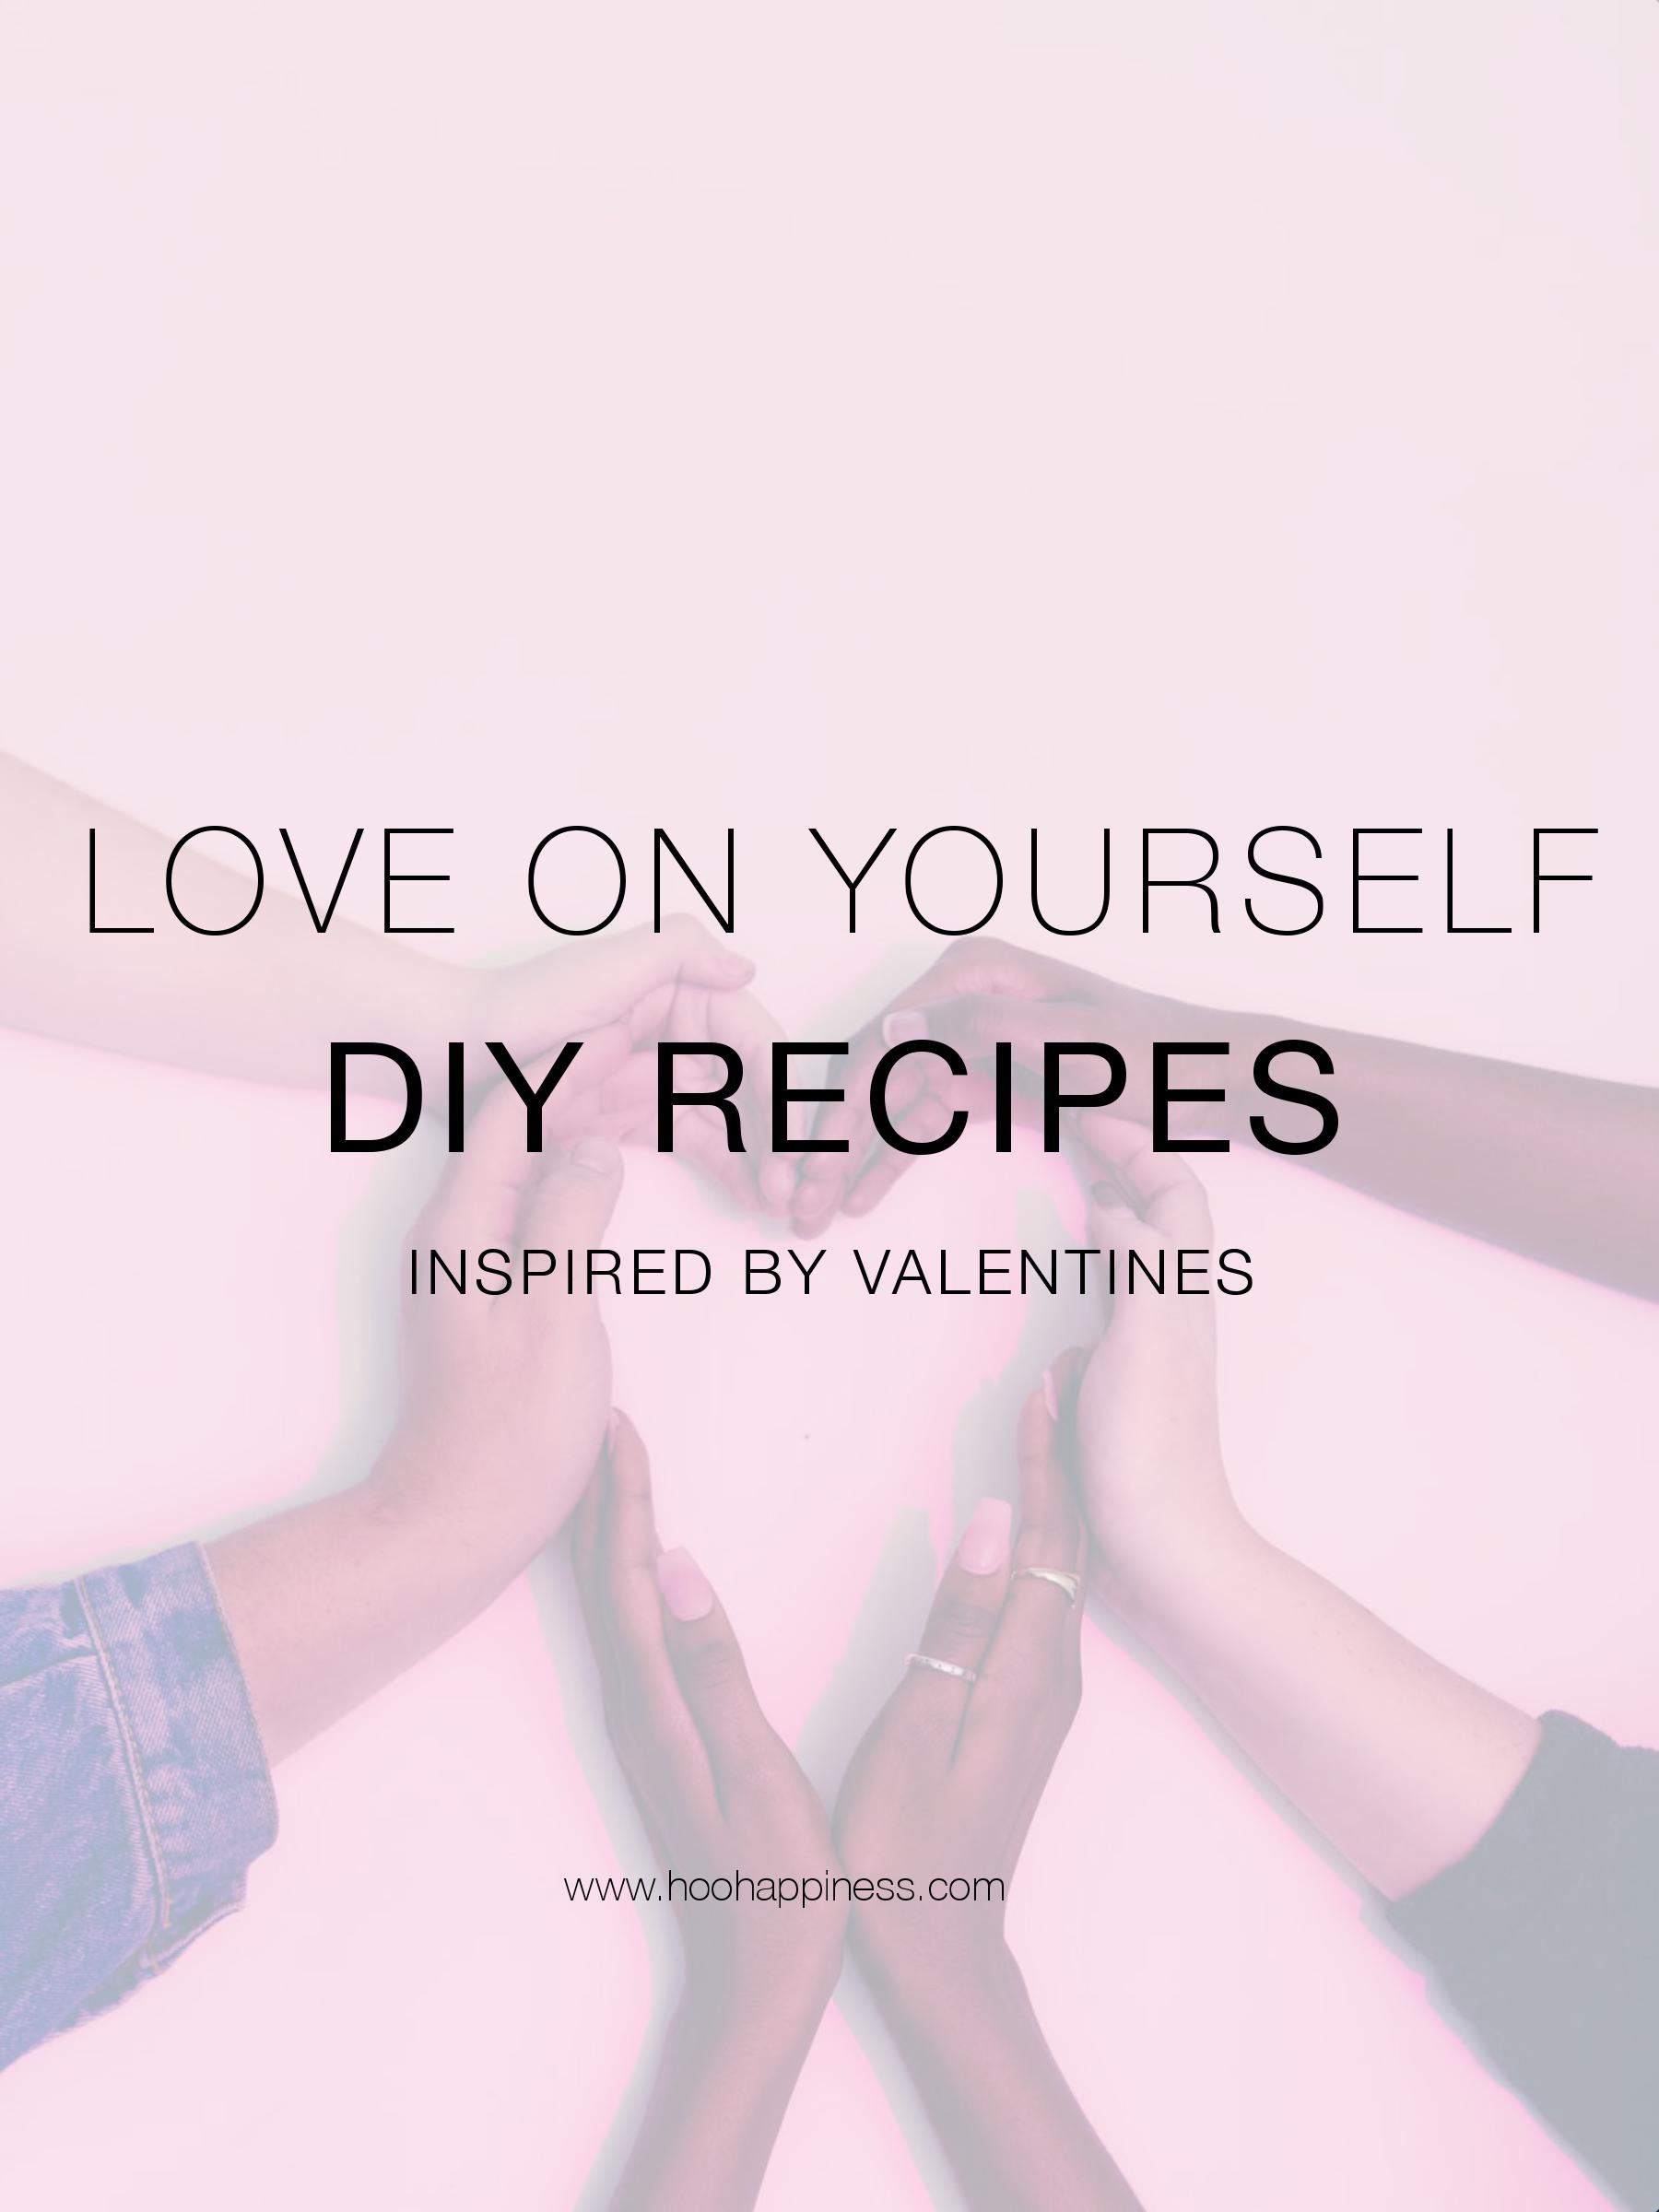 Love on Yourself DIY Recipes Inspired by Valentines